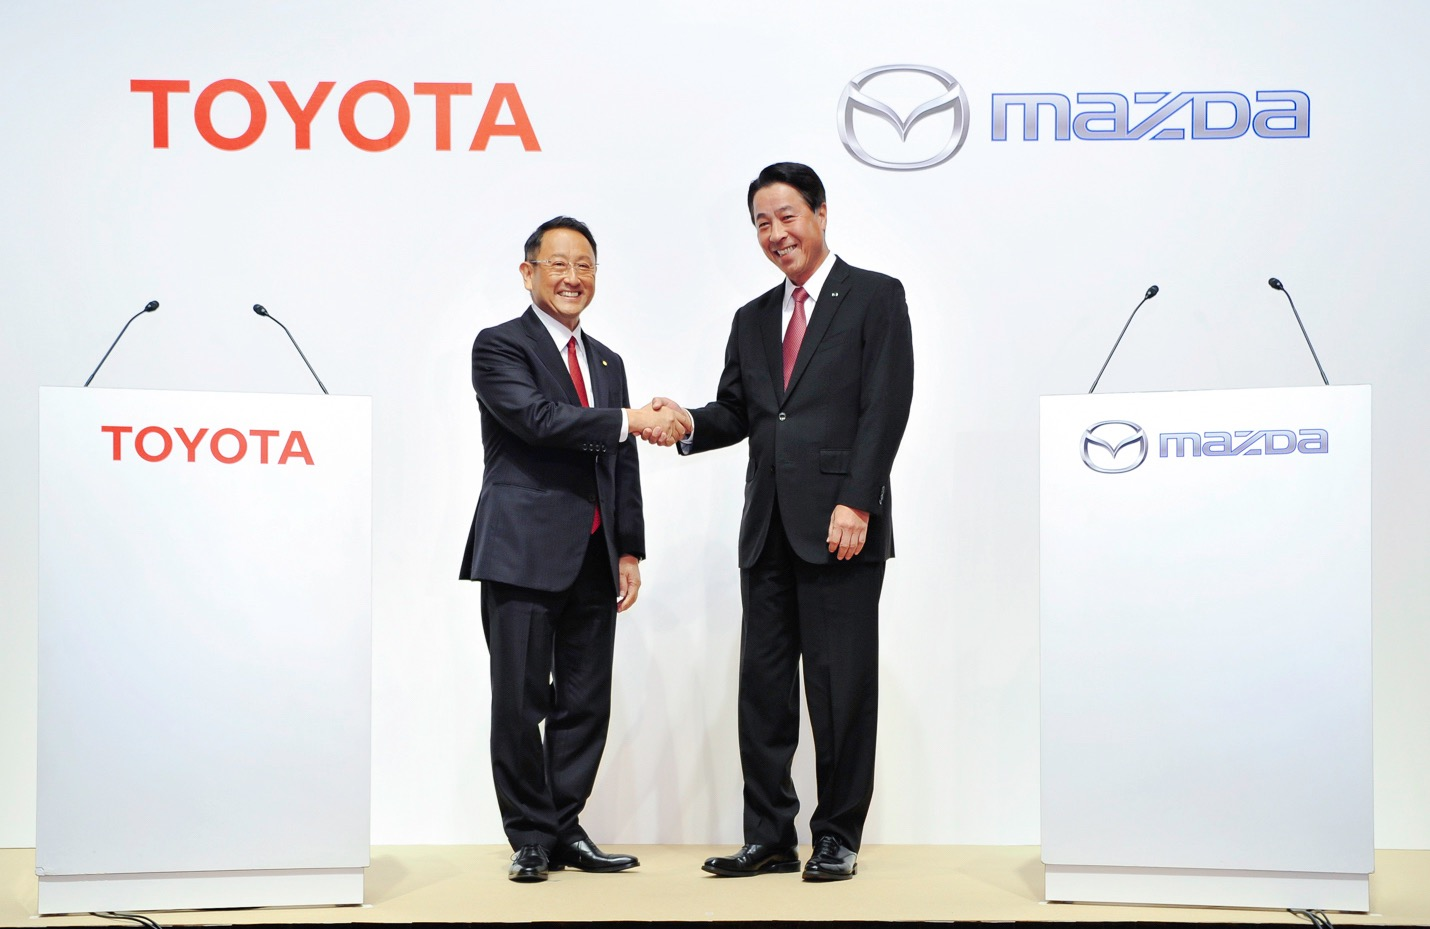 Mazda And Toyota Become Financial Partners By Targeting Electric Cars